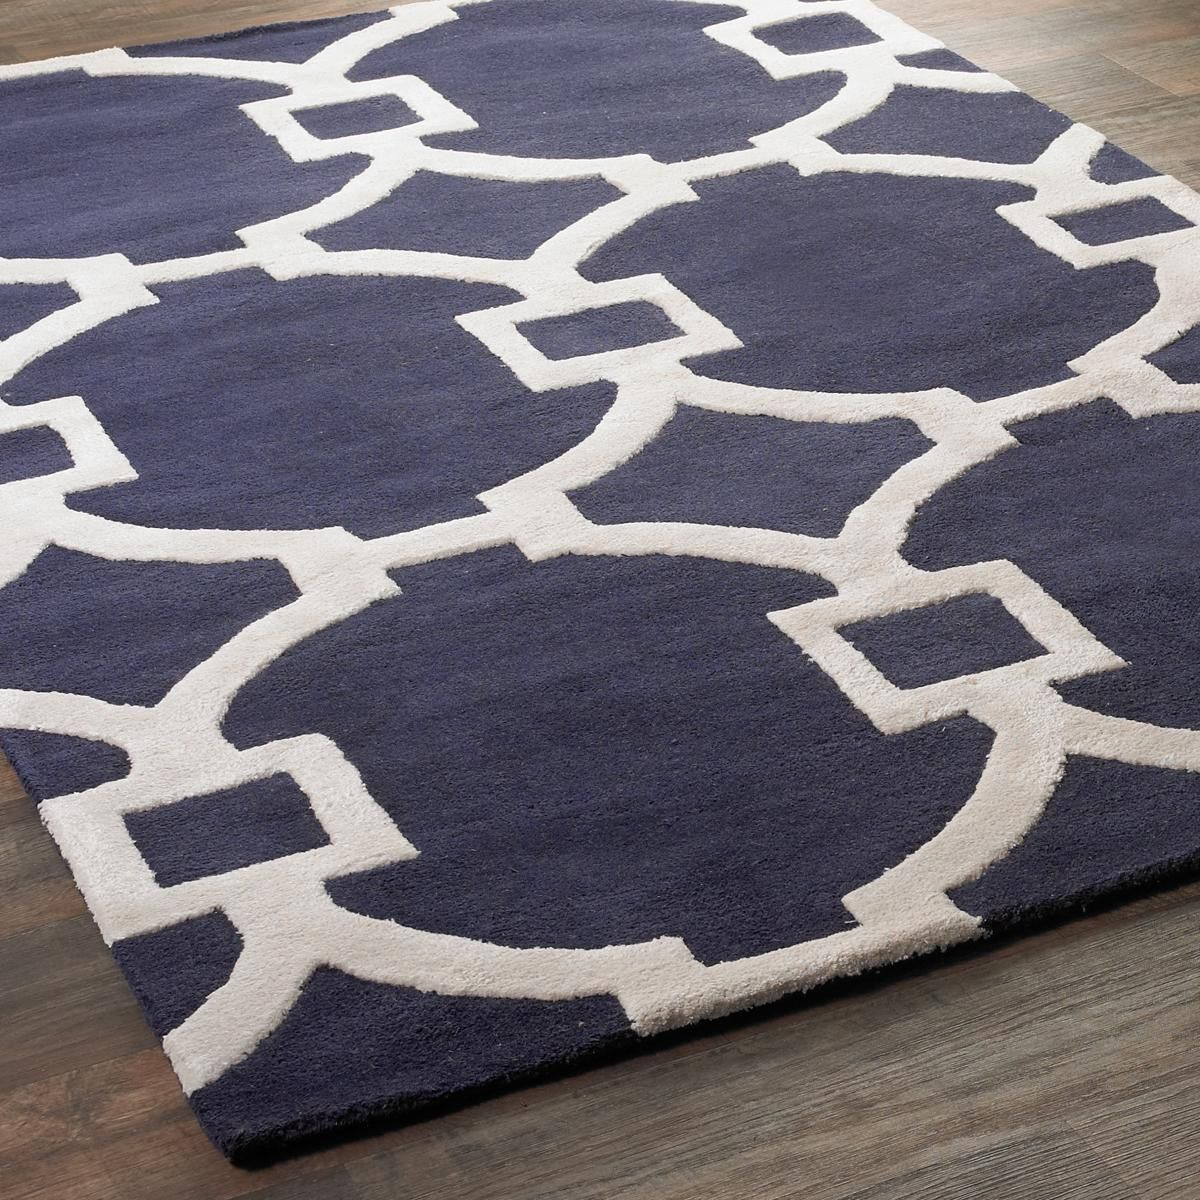 Contemporary Fretwork Plush Wool Rug